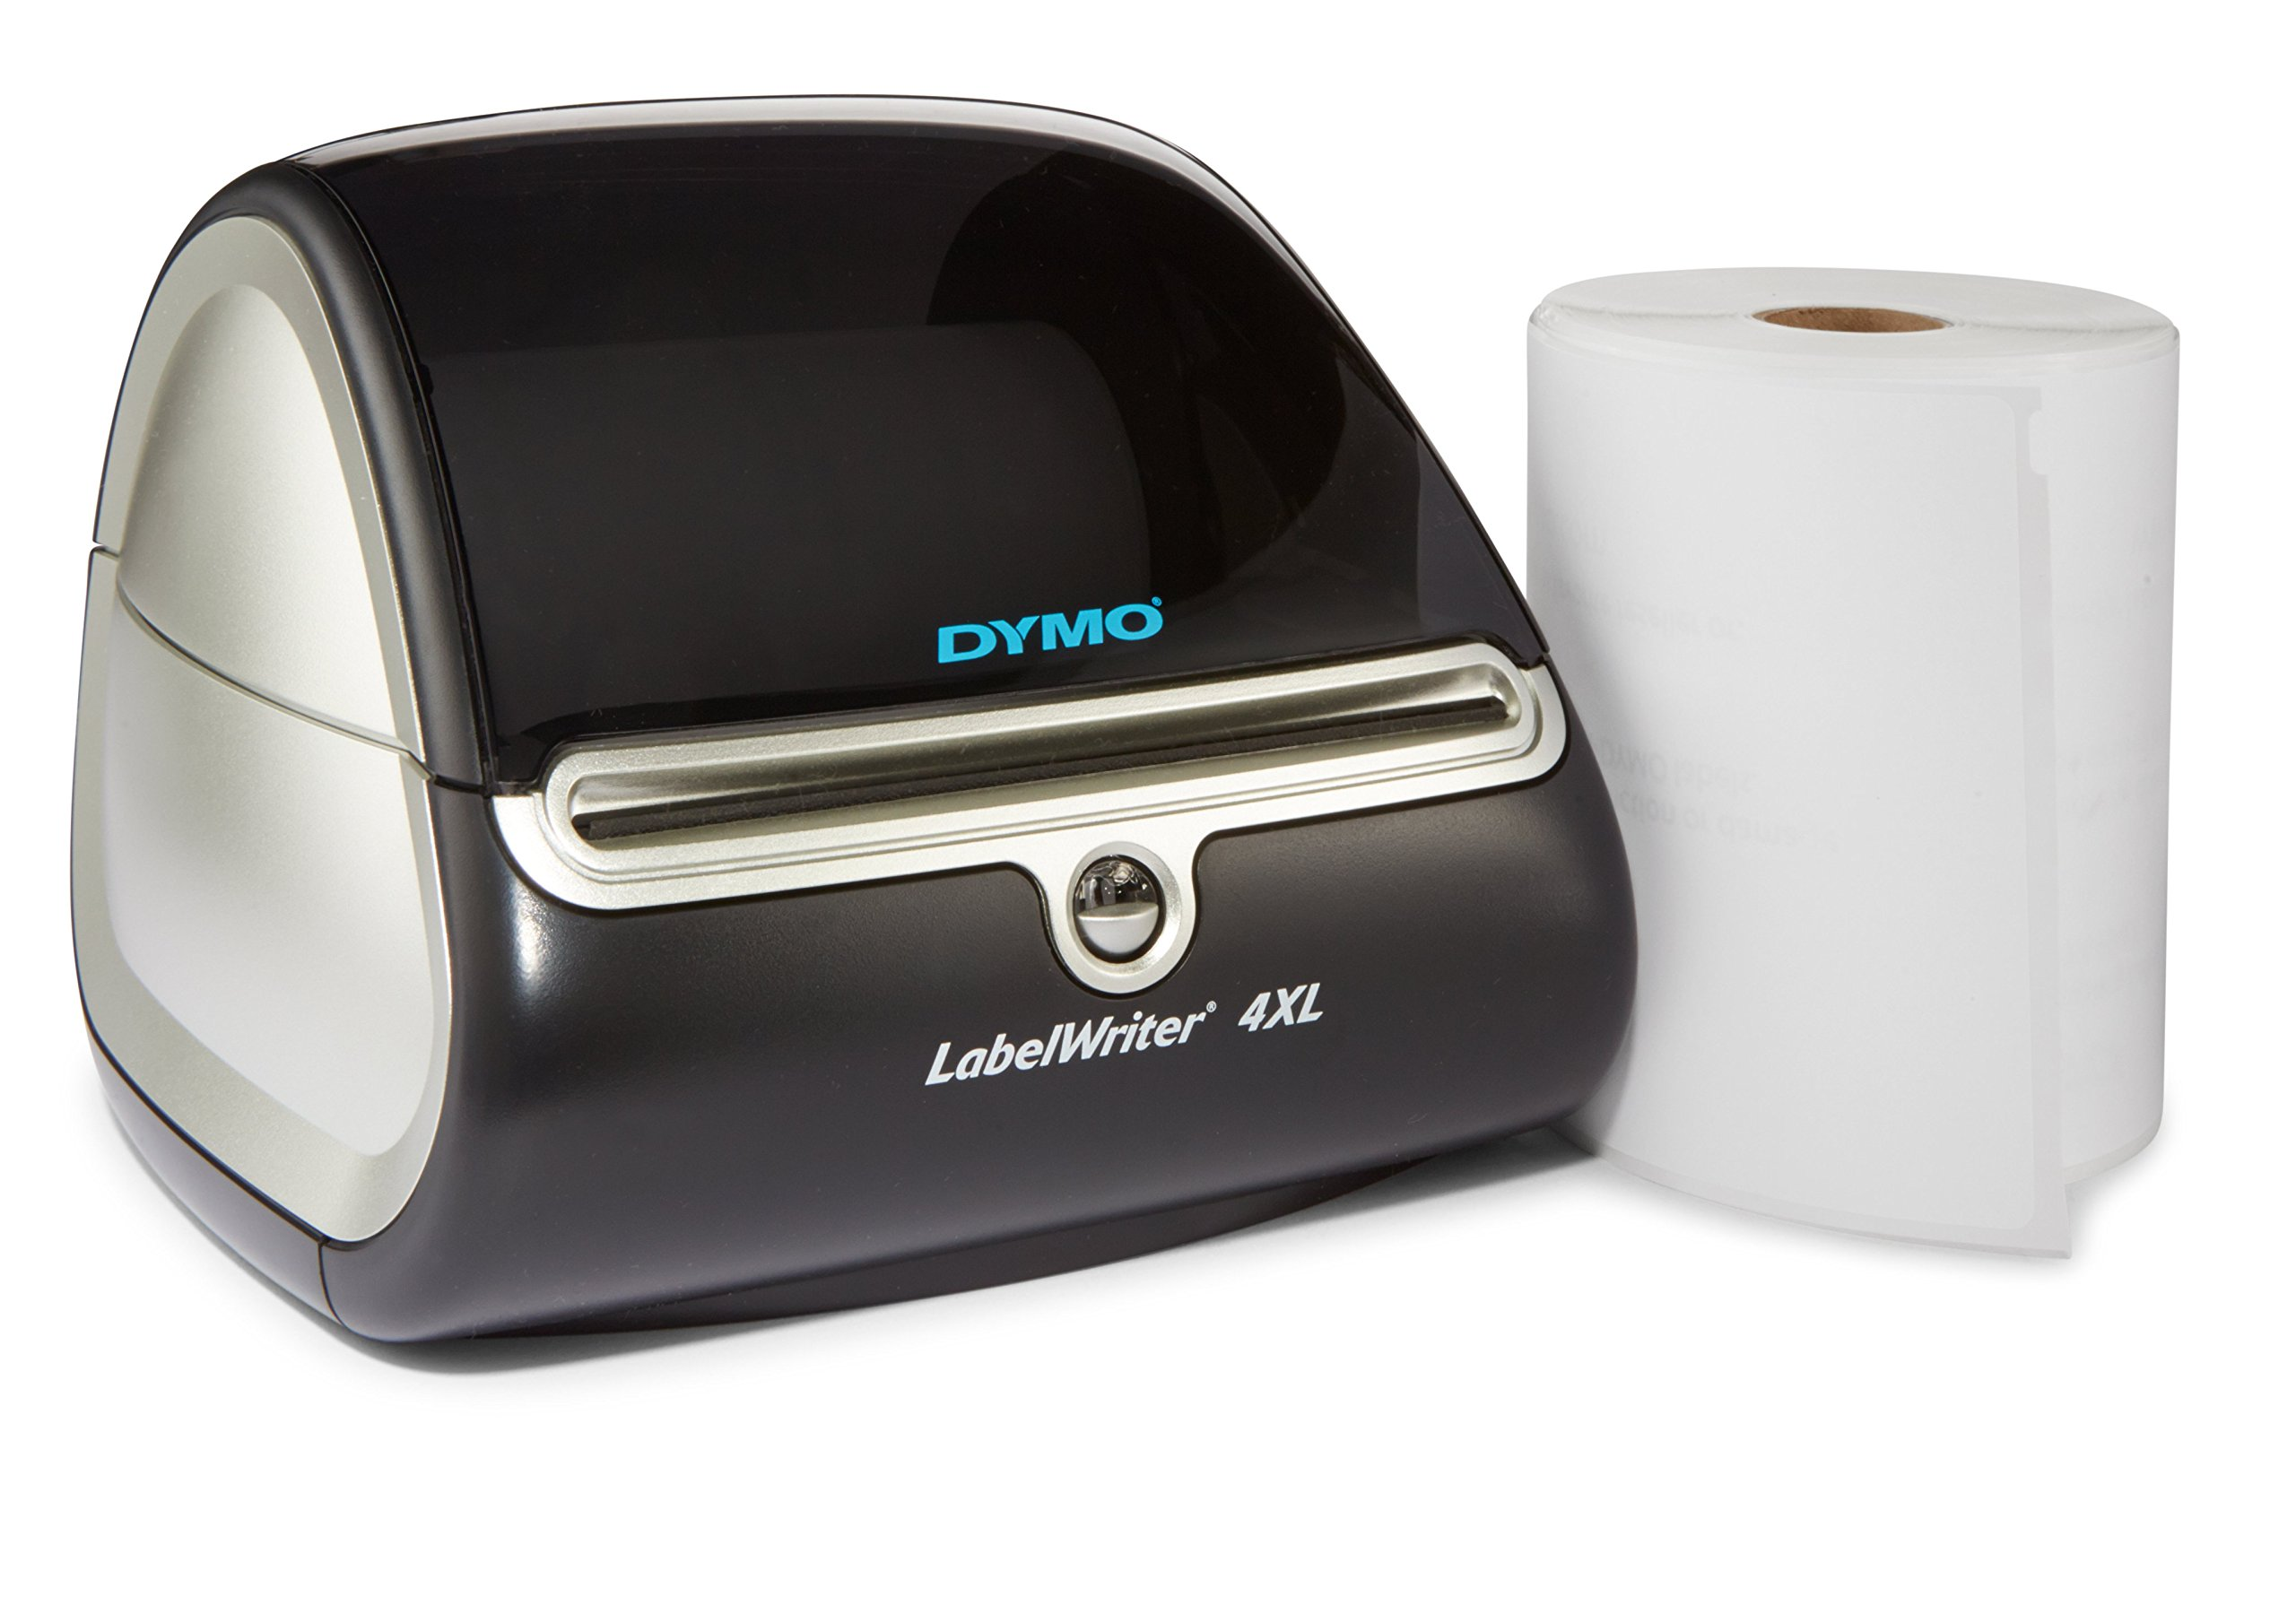 DYMO LabelWriter 4XL Label Printer with 1 bonus roll of 220 White Extra Large Shipping Labels, Shipping Bundle